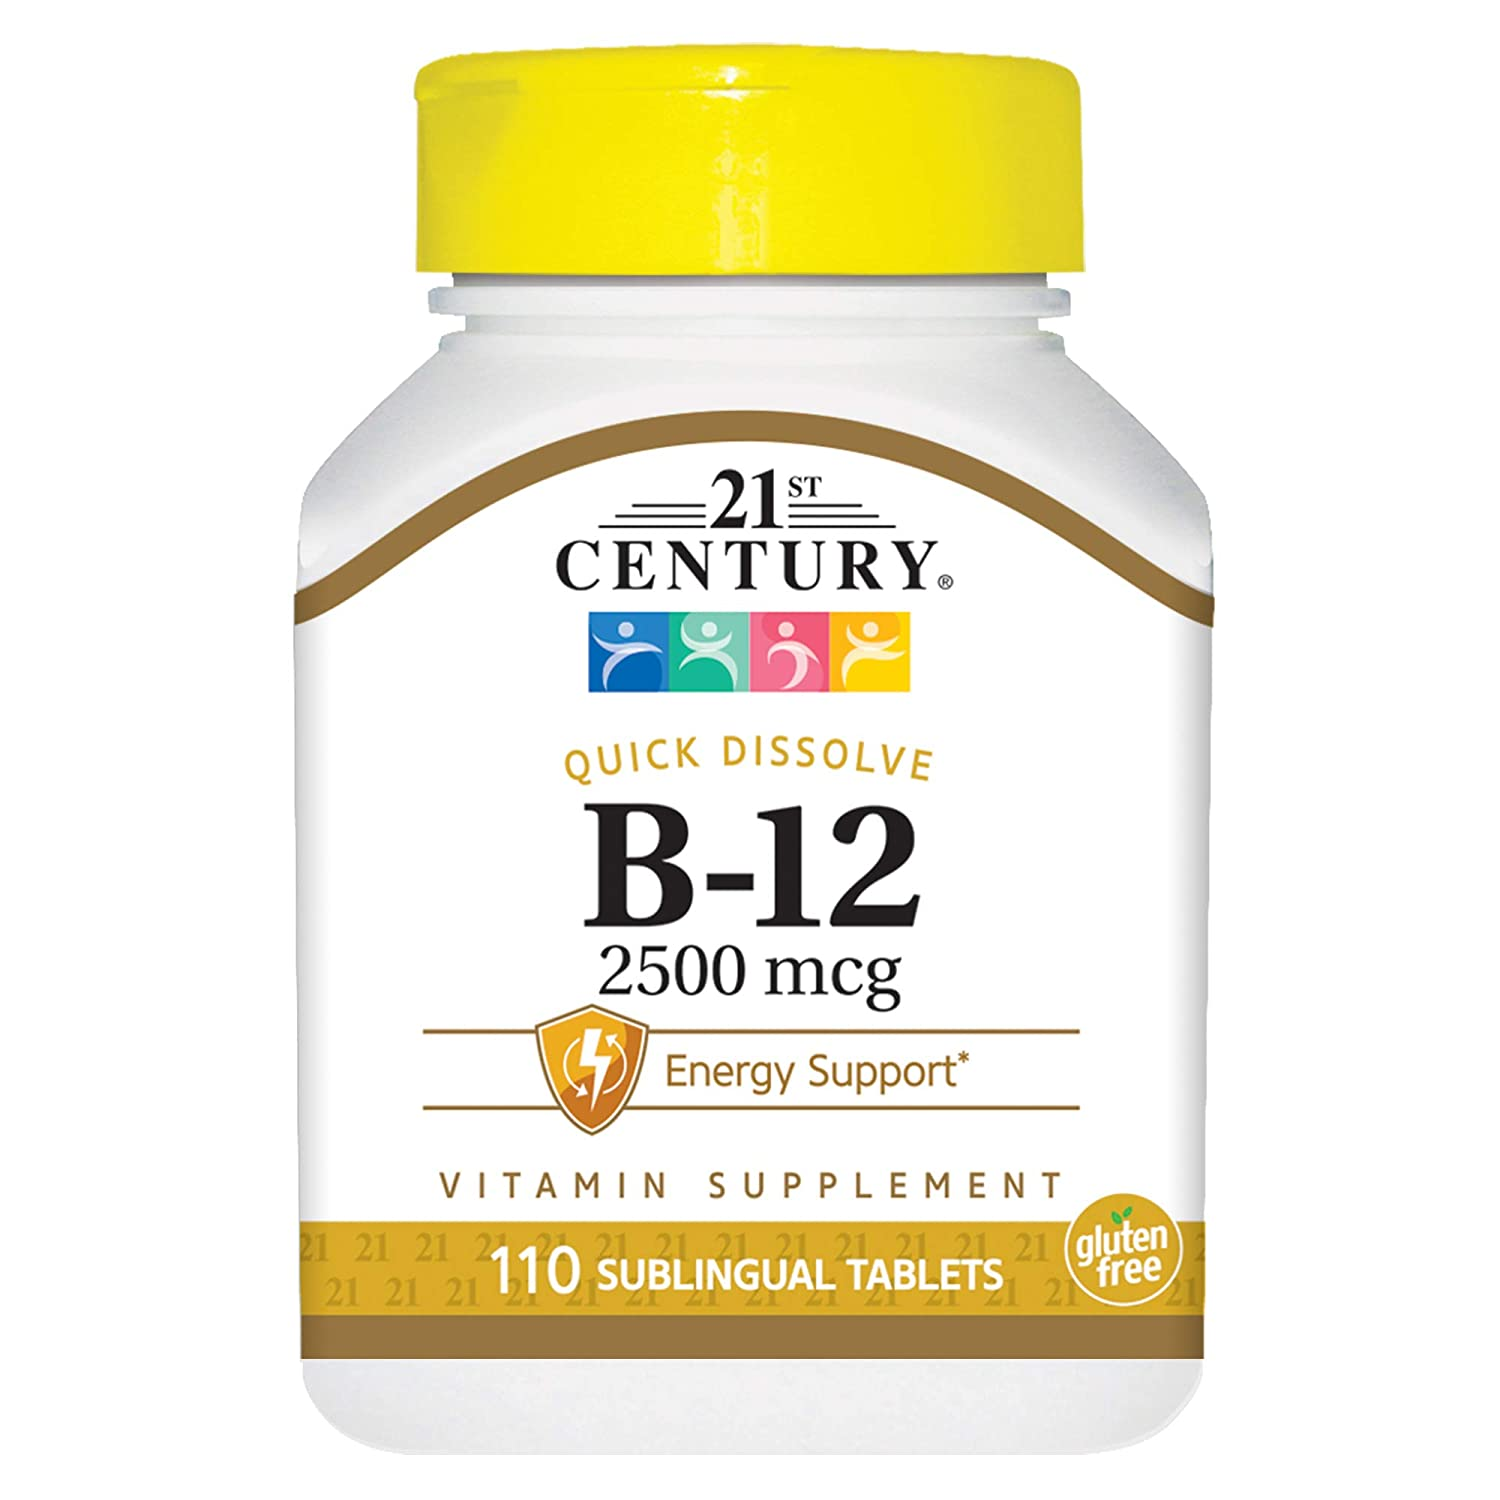 Amazon.com: 21st Century B 12 1000 mcg Prolonged Release Tablets, 110 Count: Health & Personal Care